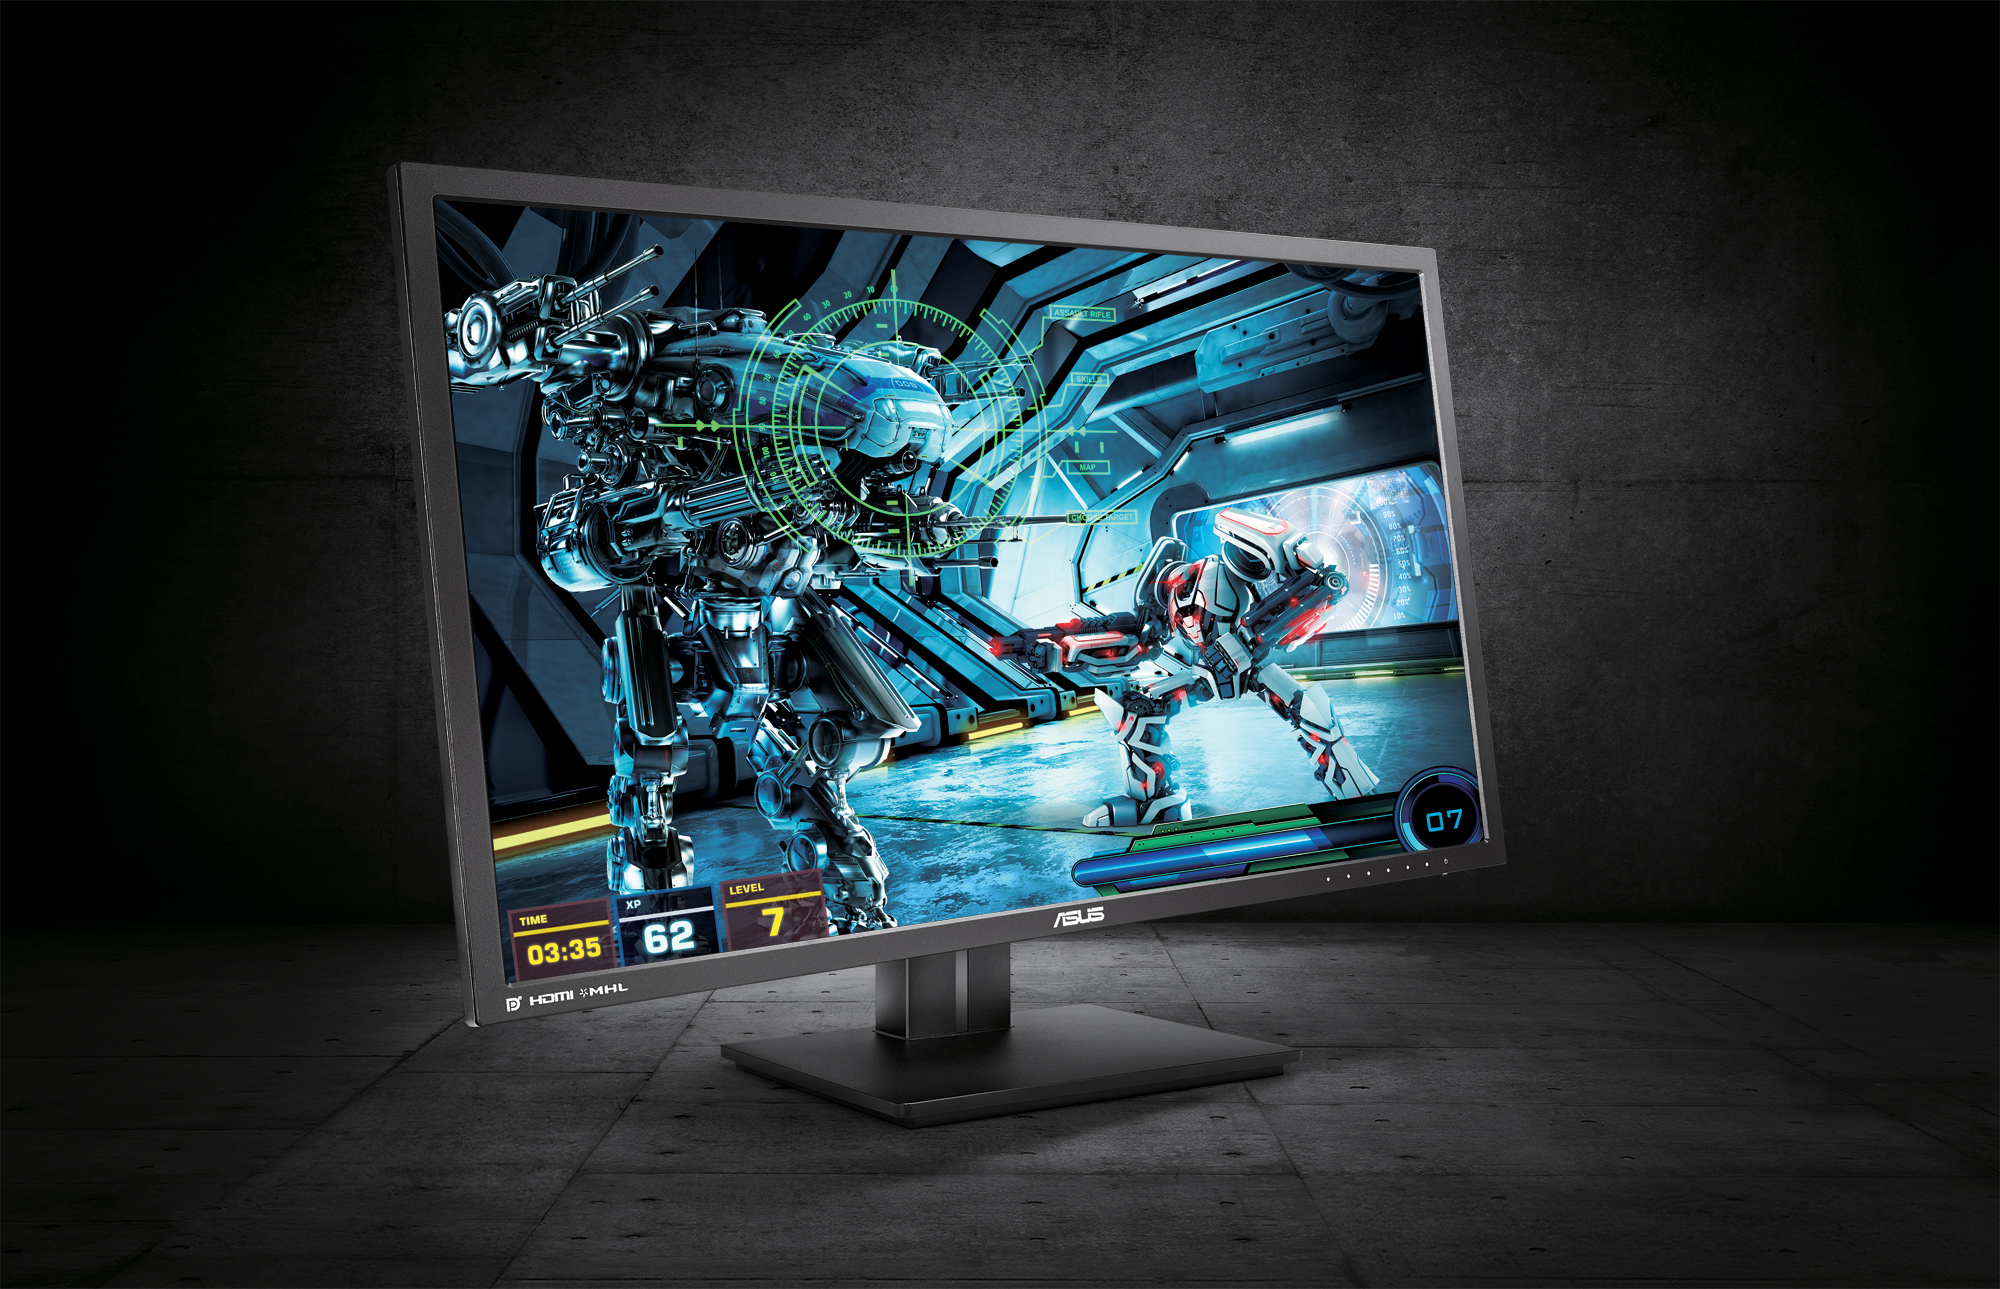 Asus PB287Q monitor | Full Specifications